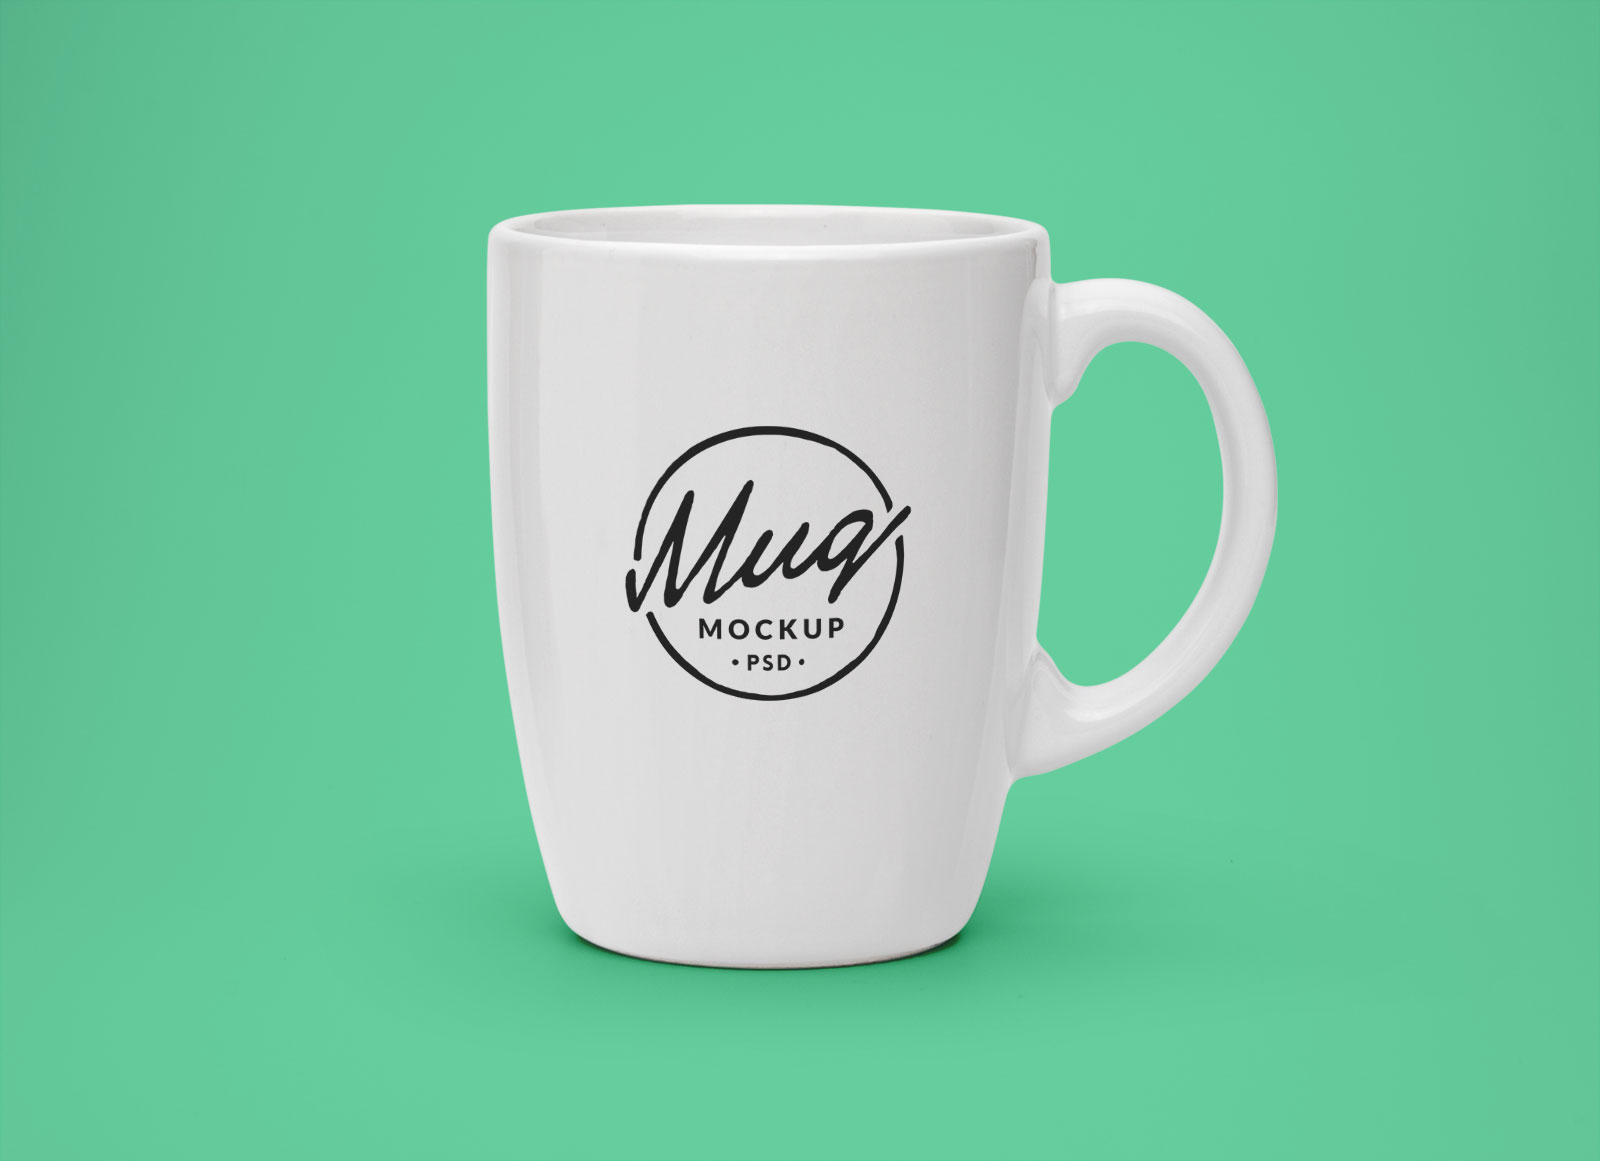 Free-White-Coffee-Mug-Mockup-PSD-2